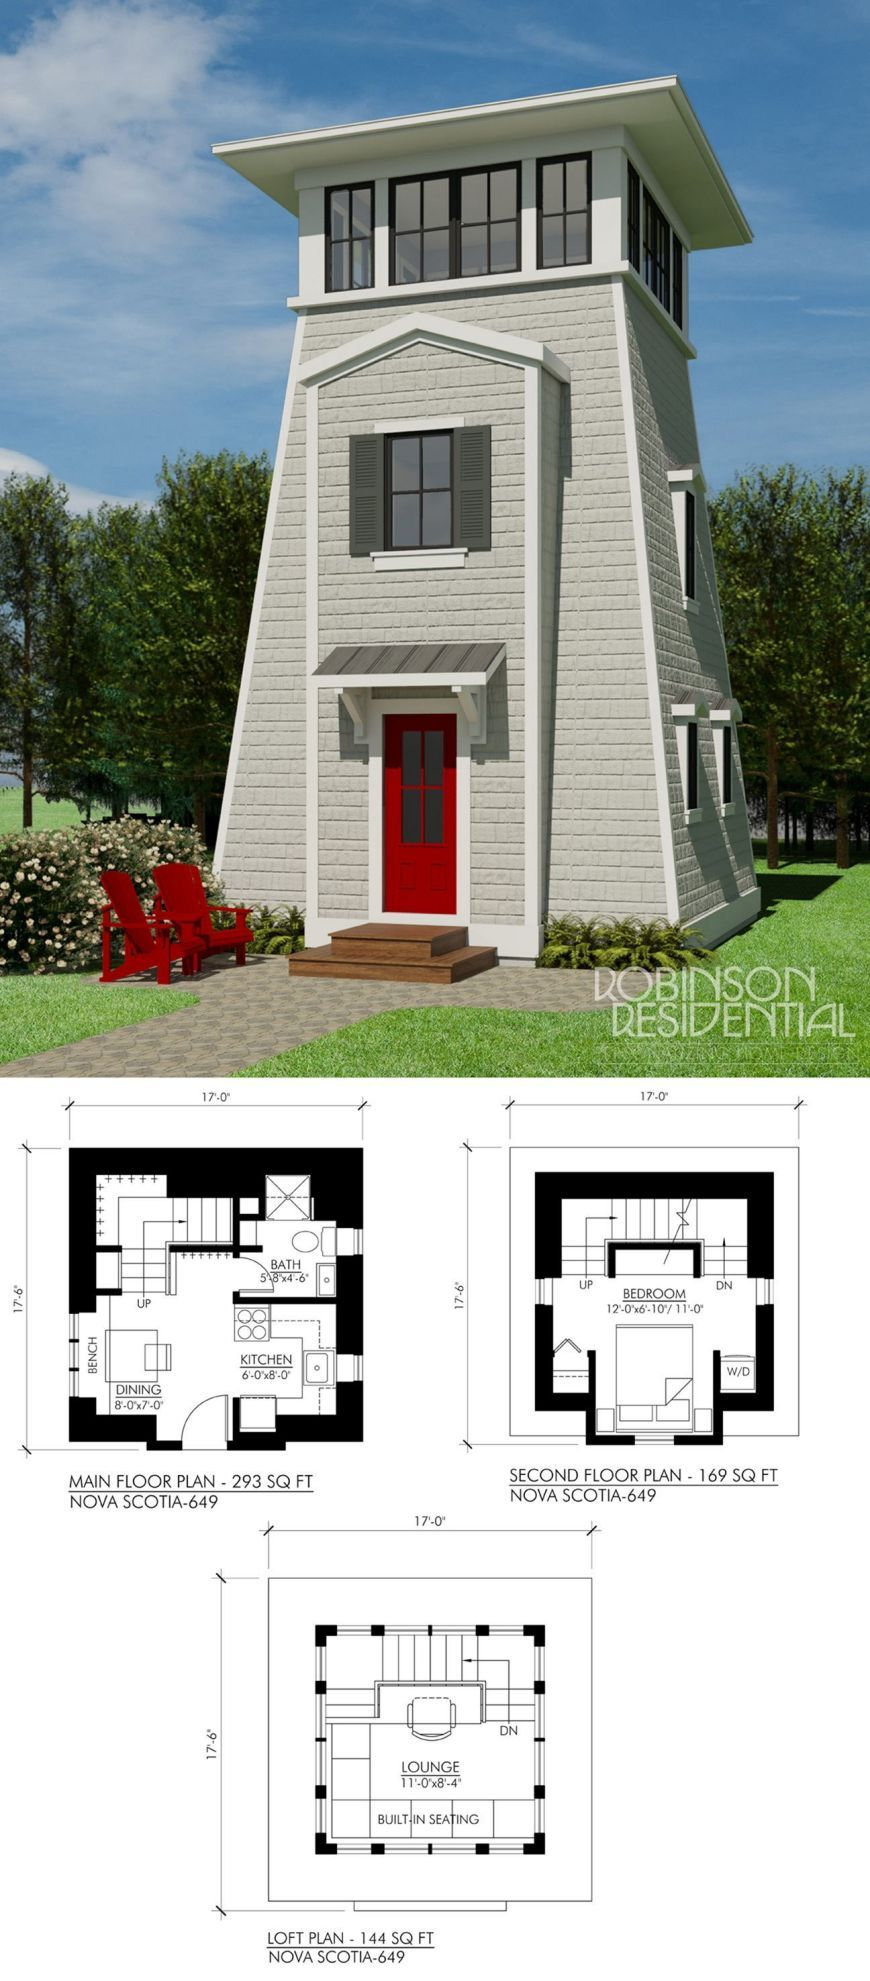 2 Bedroom Tiny Home Plan 5x8m Tiny Home Plan 5x8m Sketchup This Villa Is Modeling By Sam Architect With 3 Storie Tiny House Plans House Plans Two Bedroom House